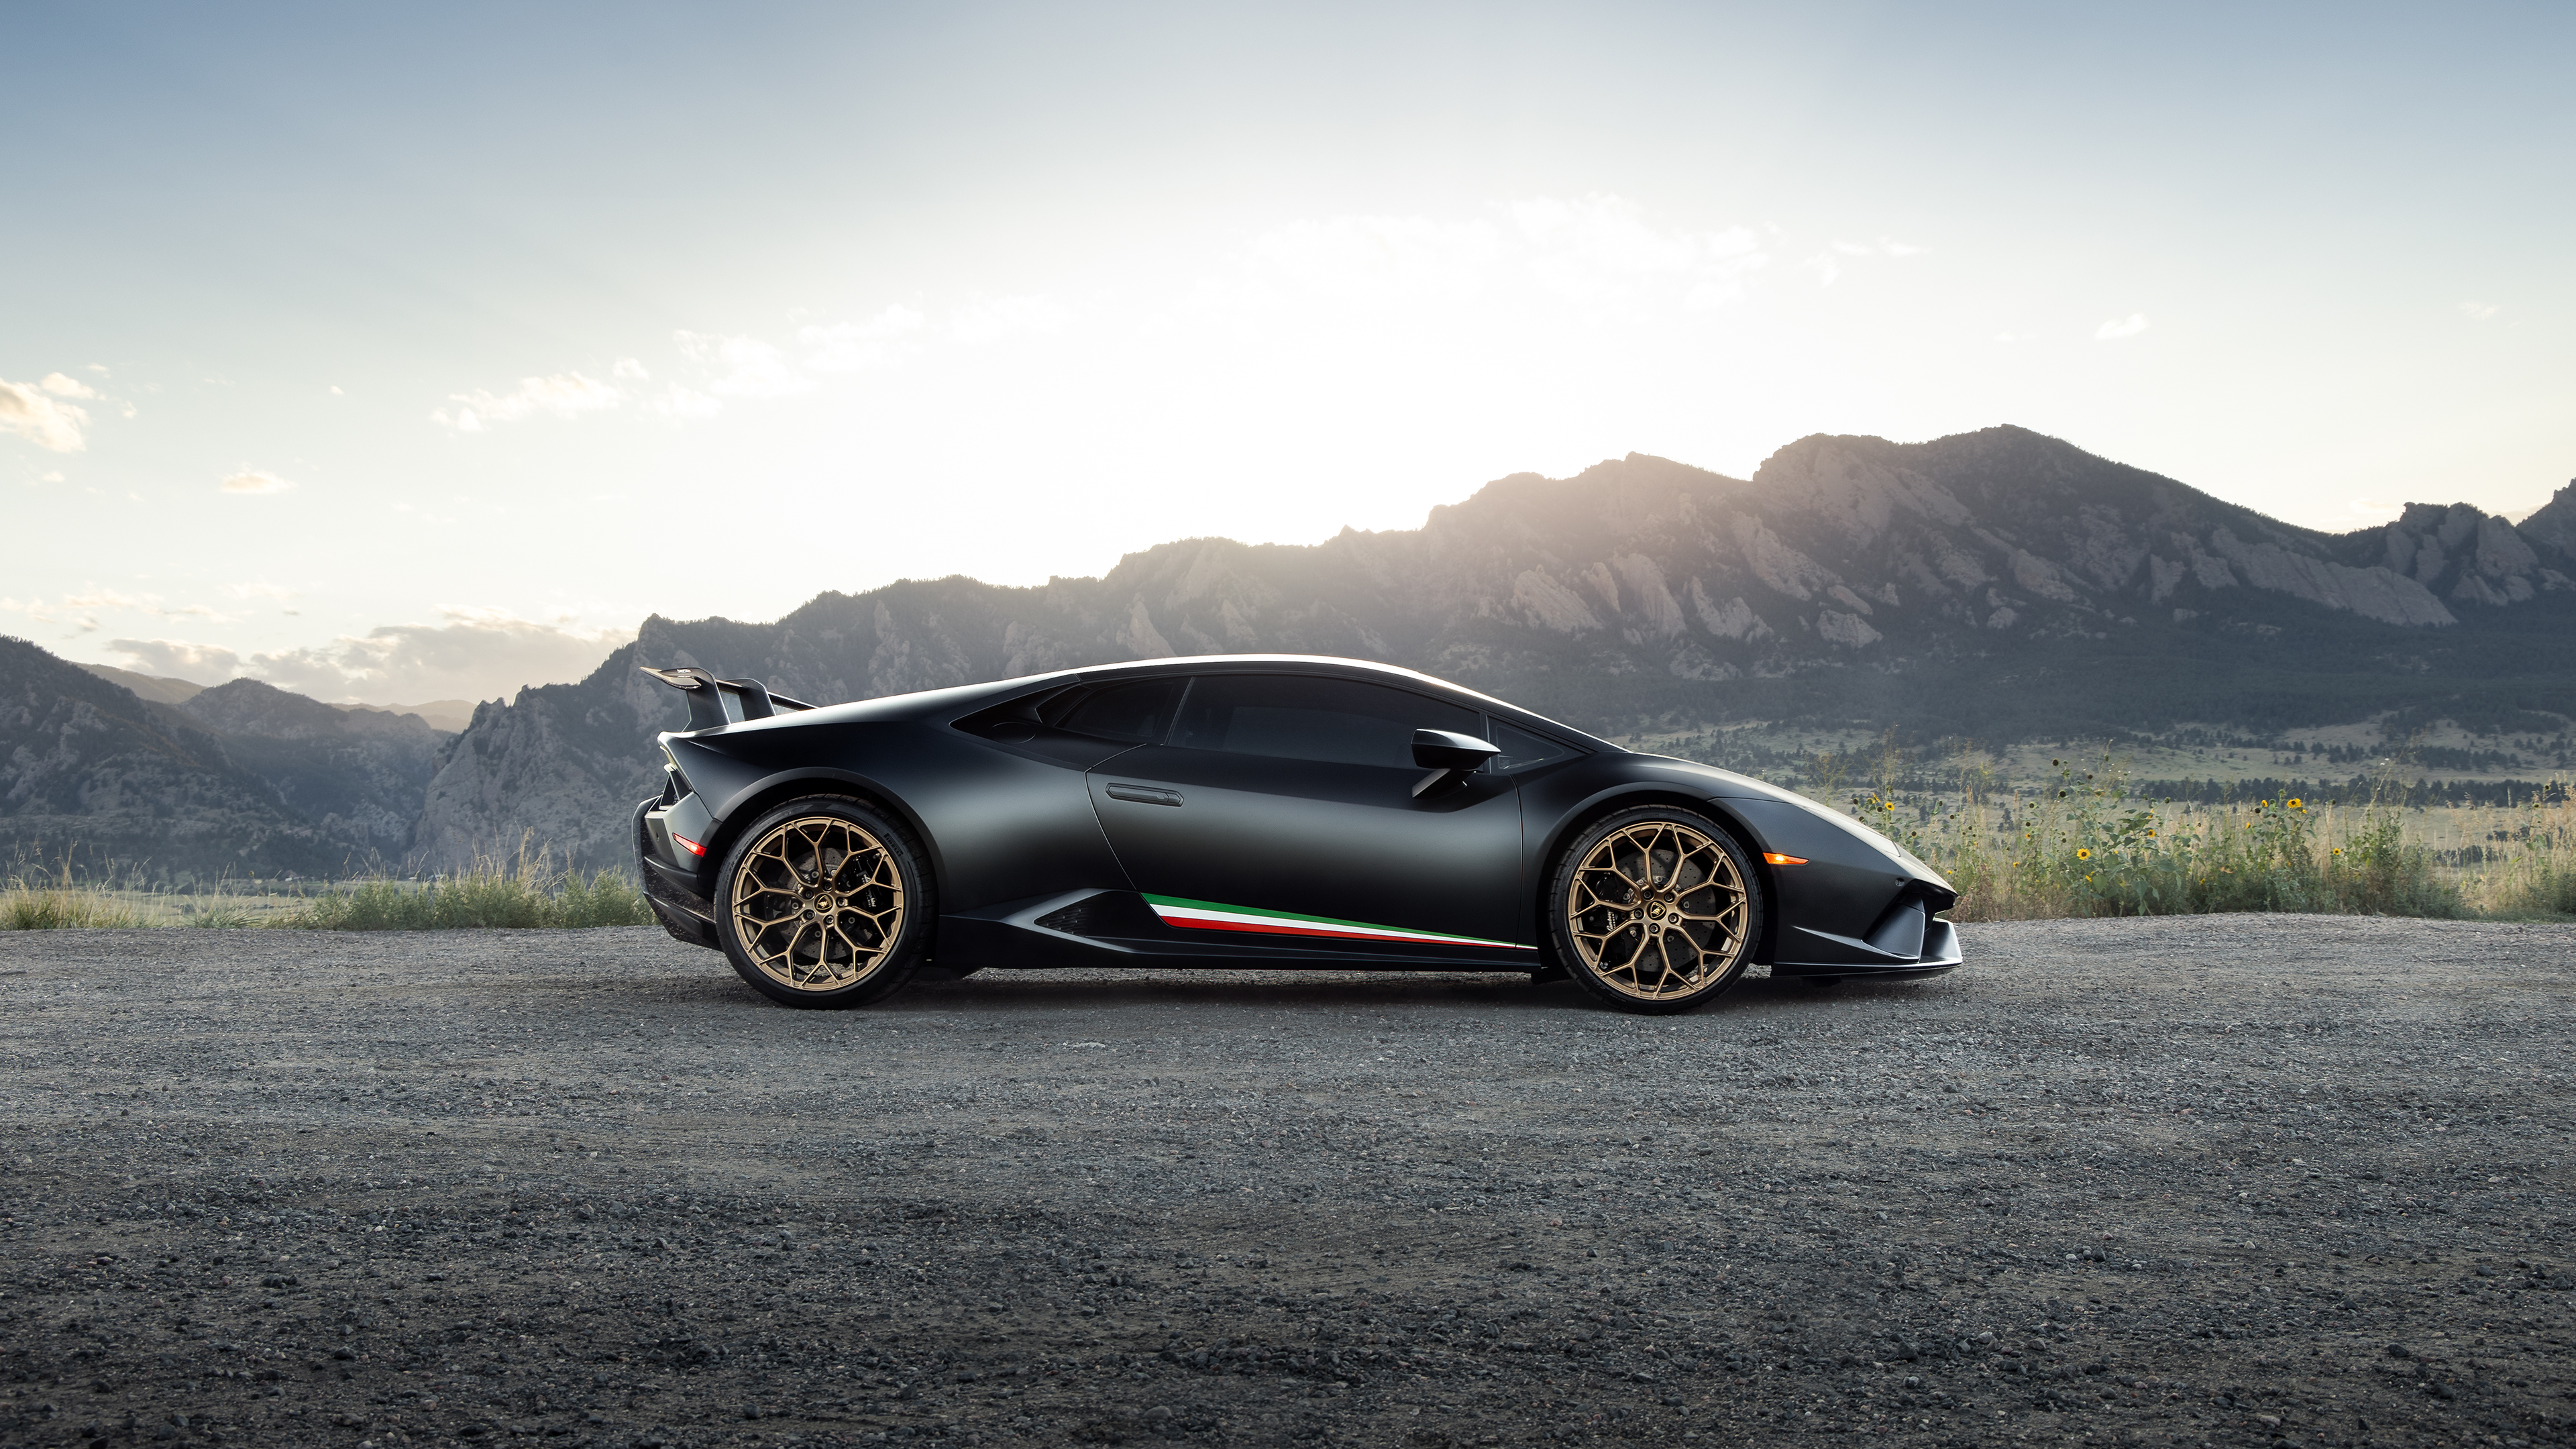 Black Lamborghini Huracan 2020 Side View Hd Cars 4k Wallpapers Images Backgrounds Photos And Pictures